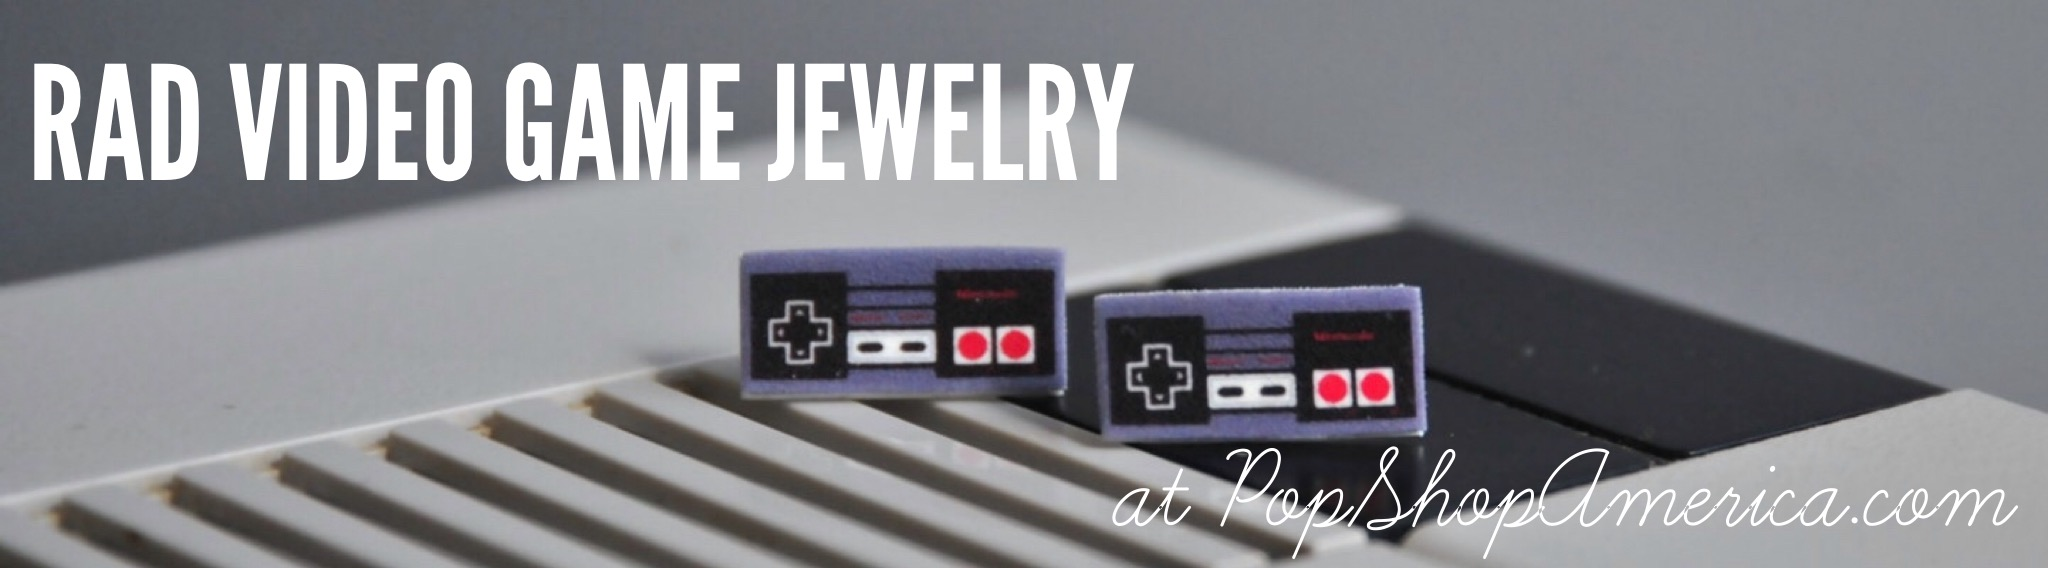 Game Jewelry Promo Get At Pop America Online Ping Website